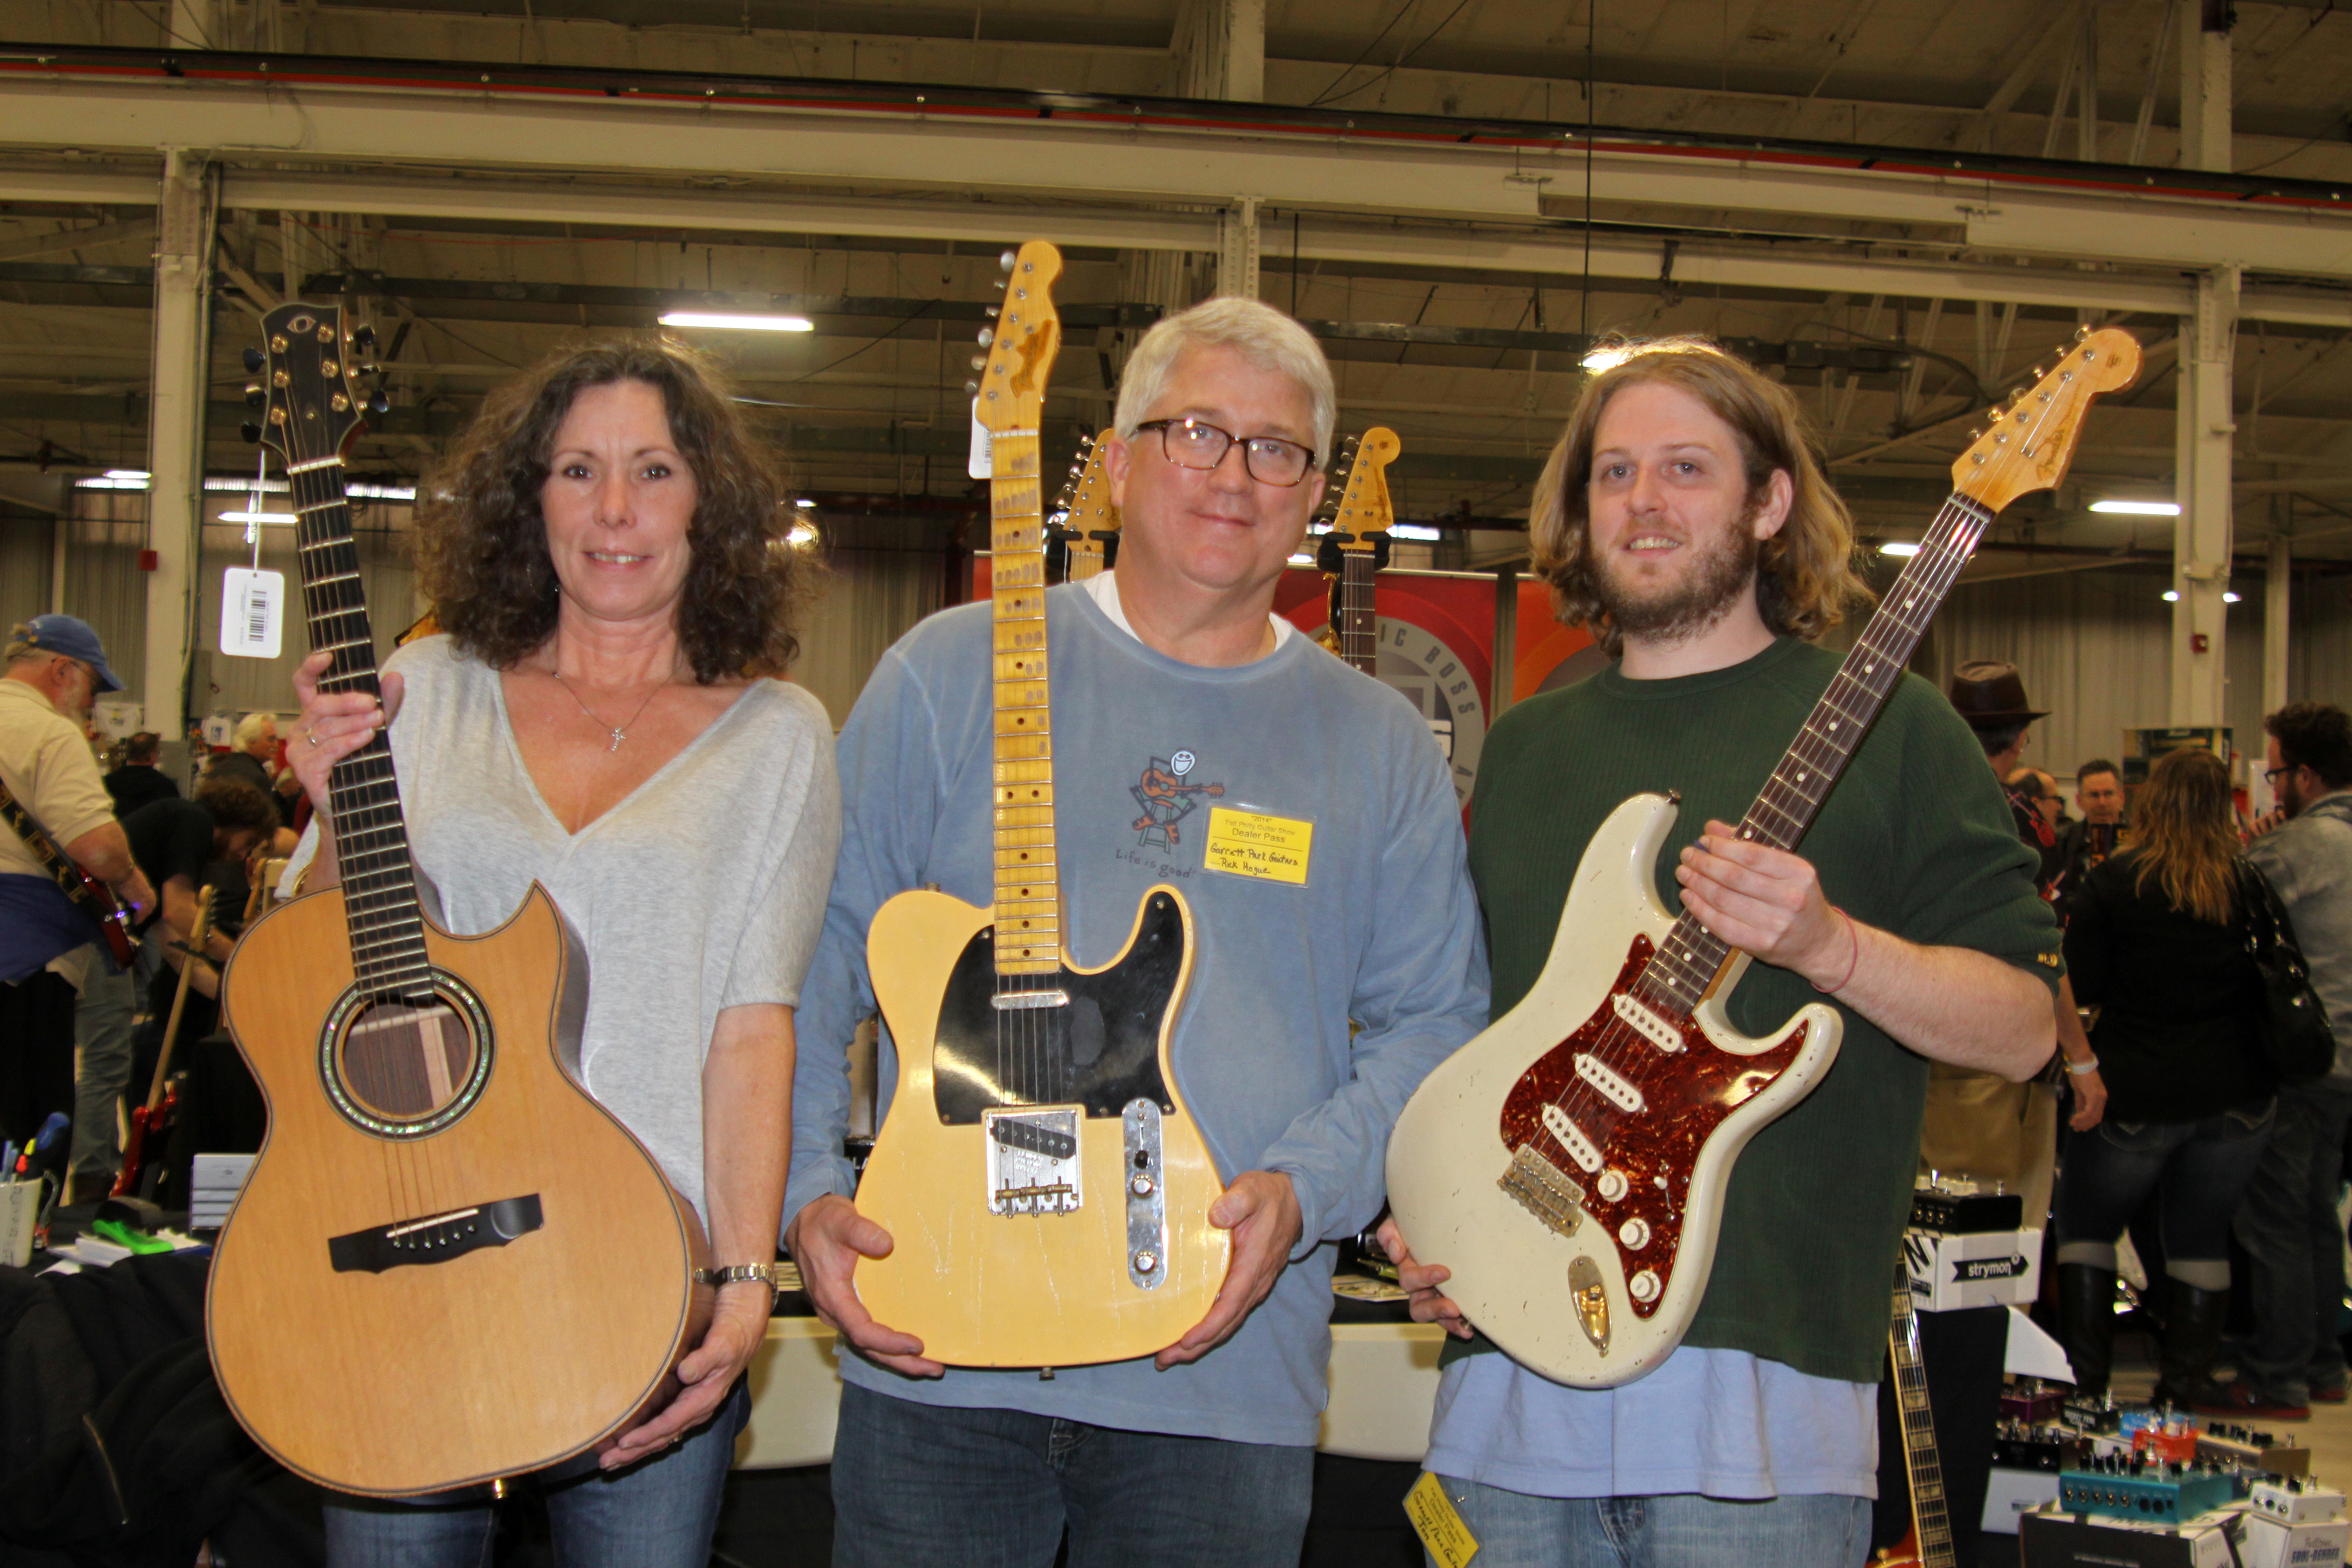 Taylor Gitar Custom Brown Aw1 220 X Janet Stites Rick Hogue And Jon Bookstein Of Garrett Park Guitars With Olson